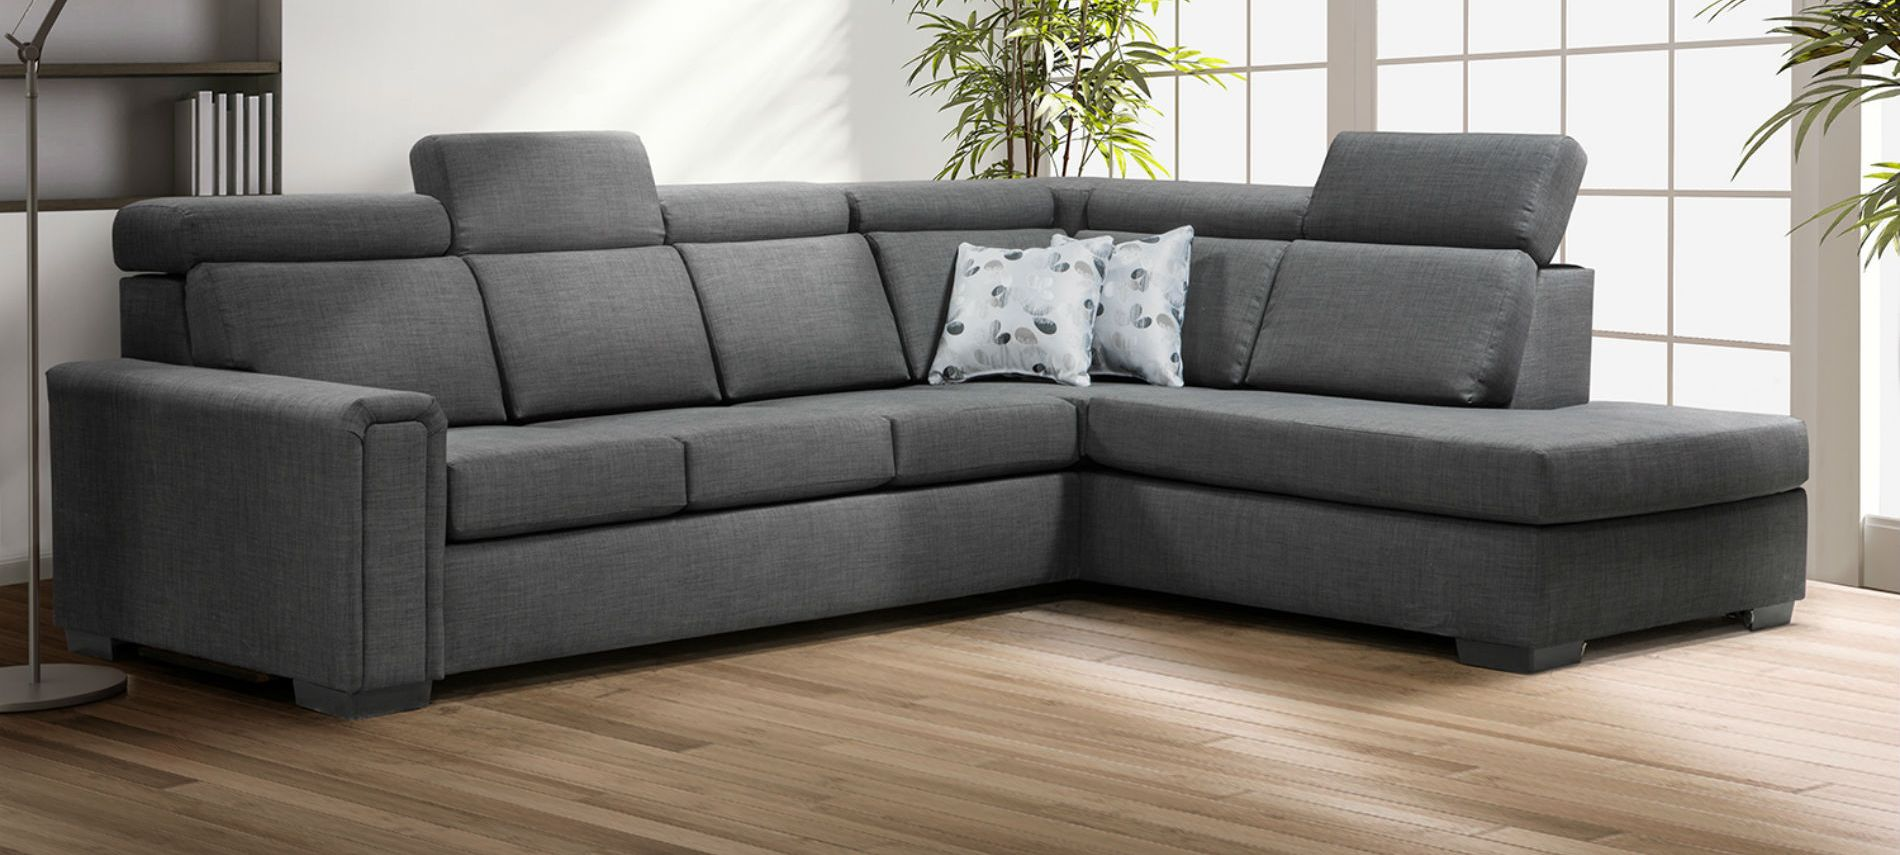 Meuble Chicago Chicago Fabric Sectional Made In Canada Meubles Belisle